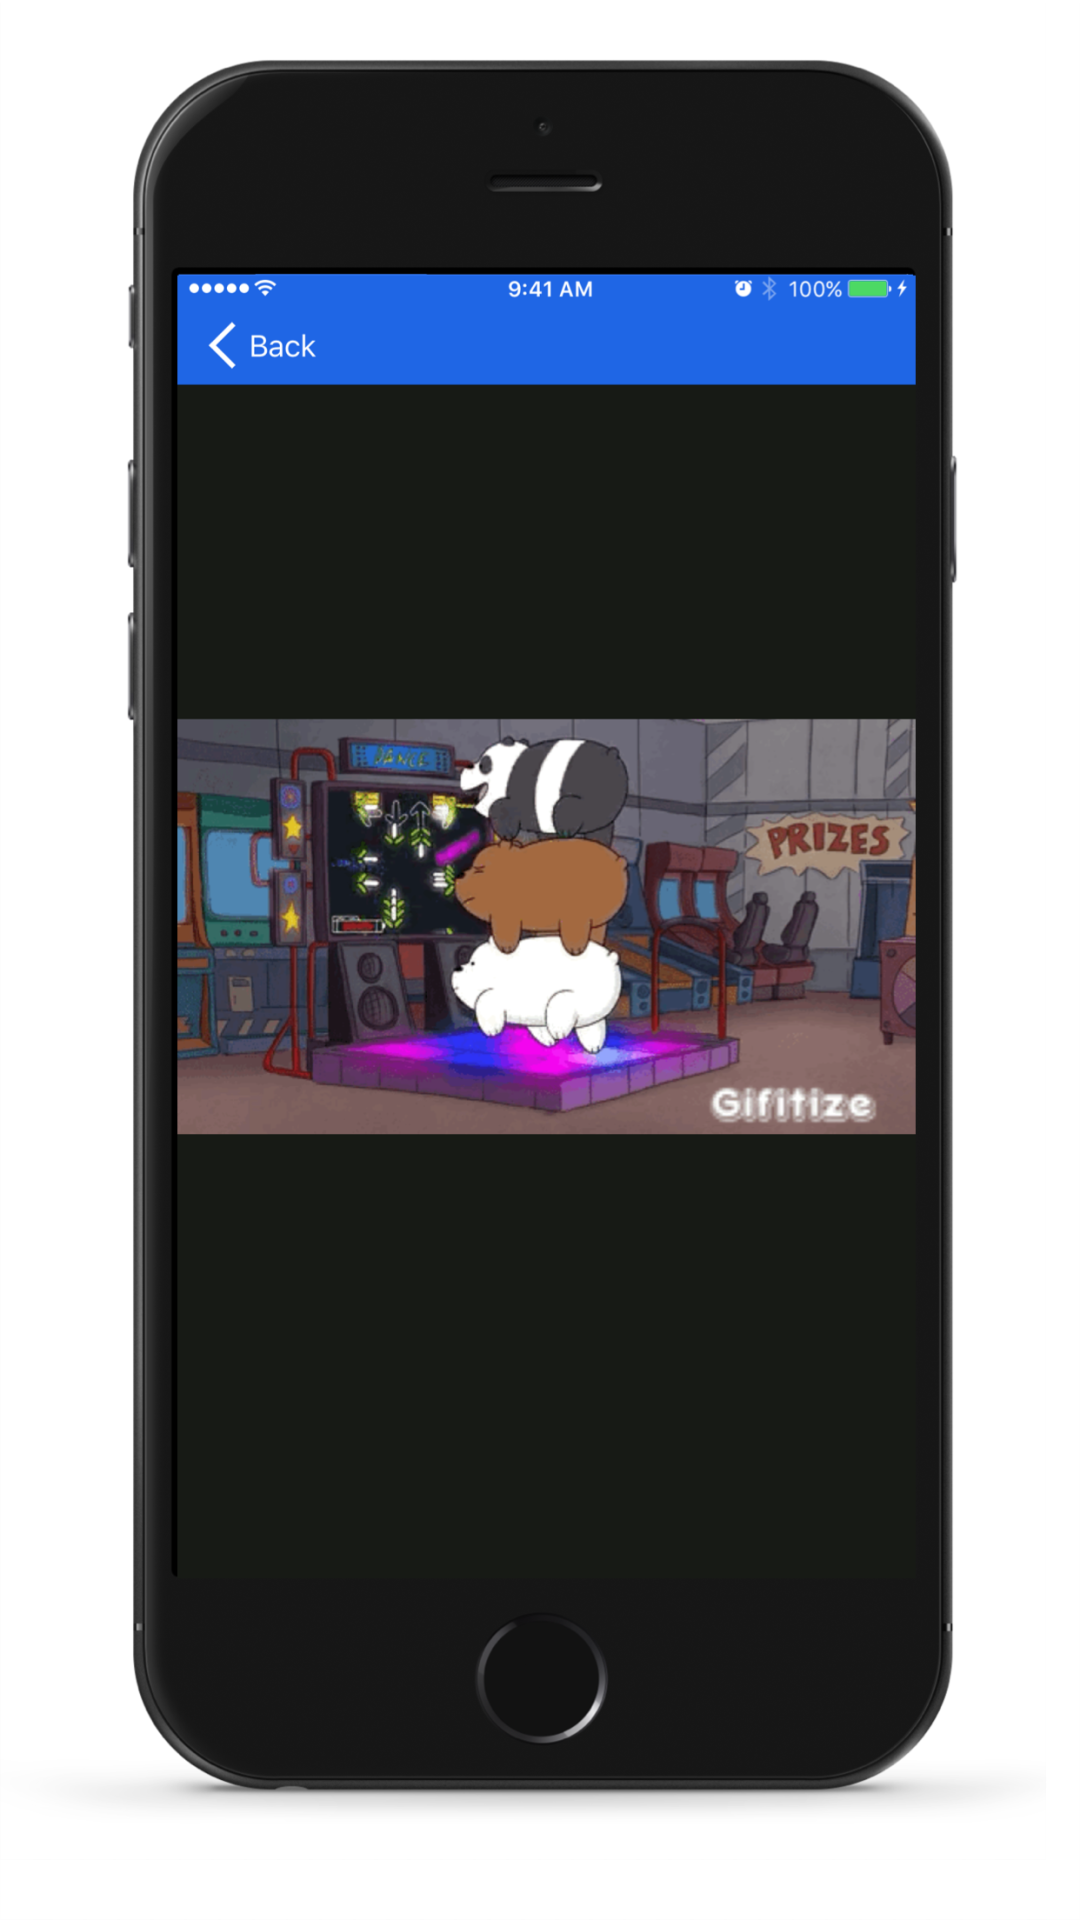 Gifitize full-screen view